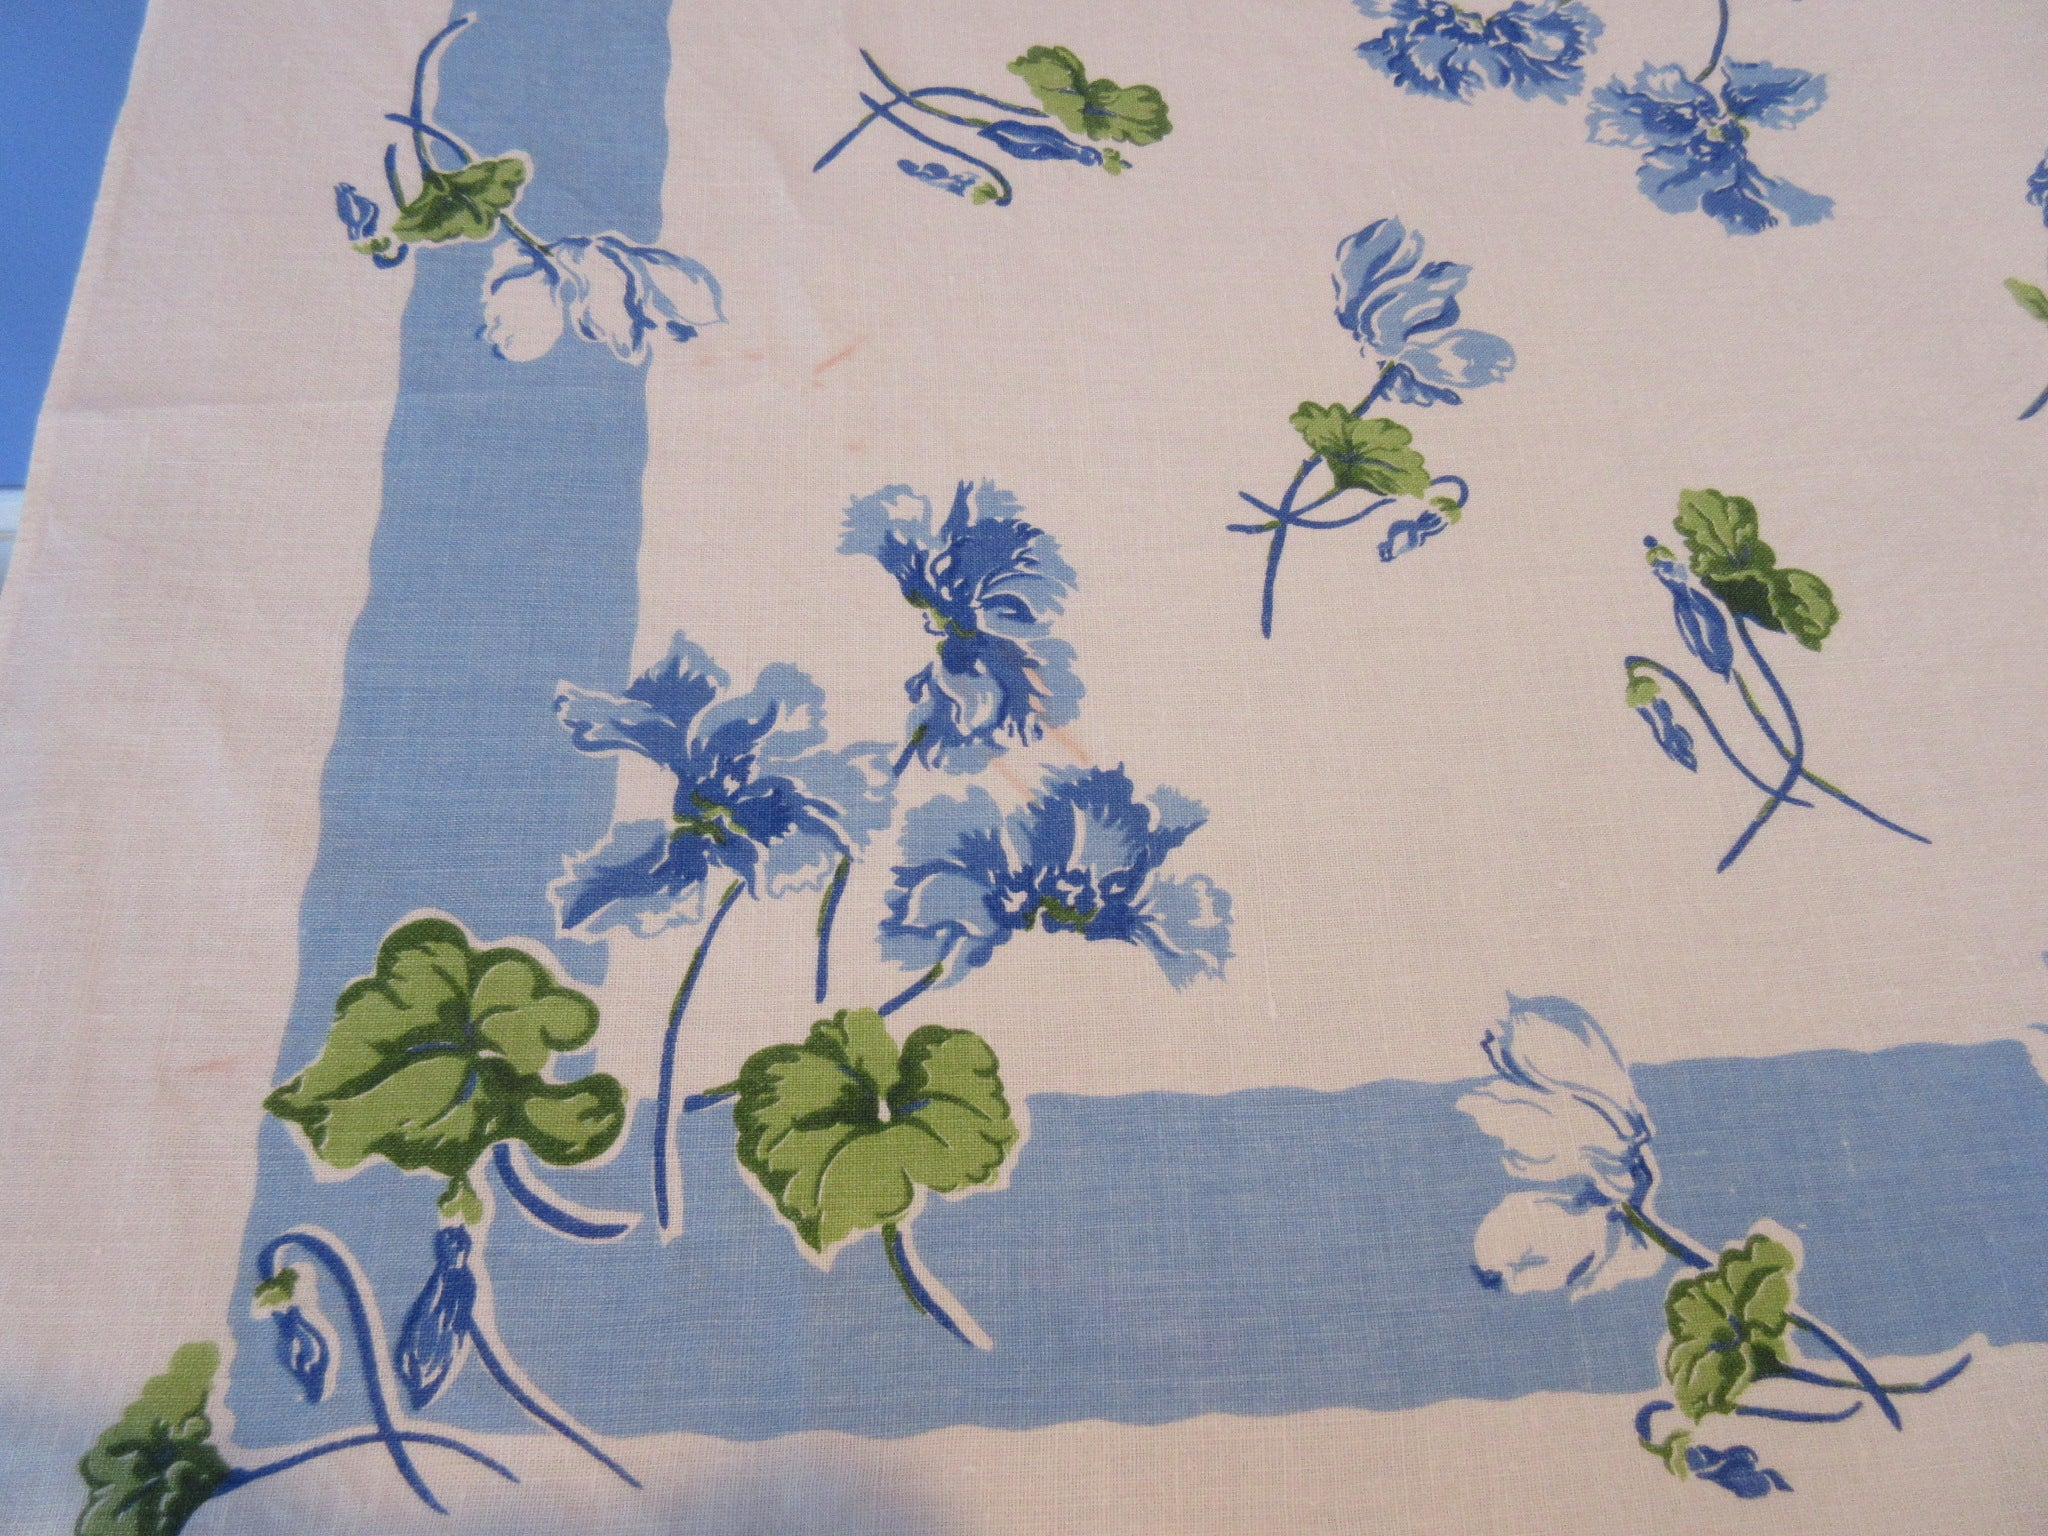 Blue Green Flowers on Blue Linen Floral Vintage Printed Tablecloth (66 X 50)